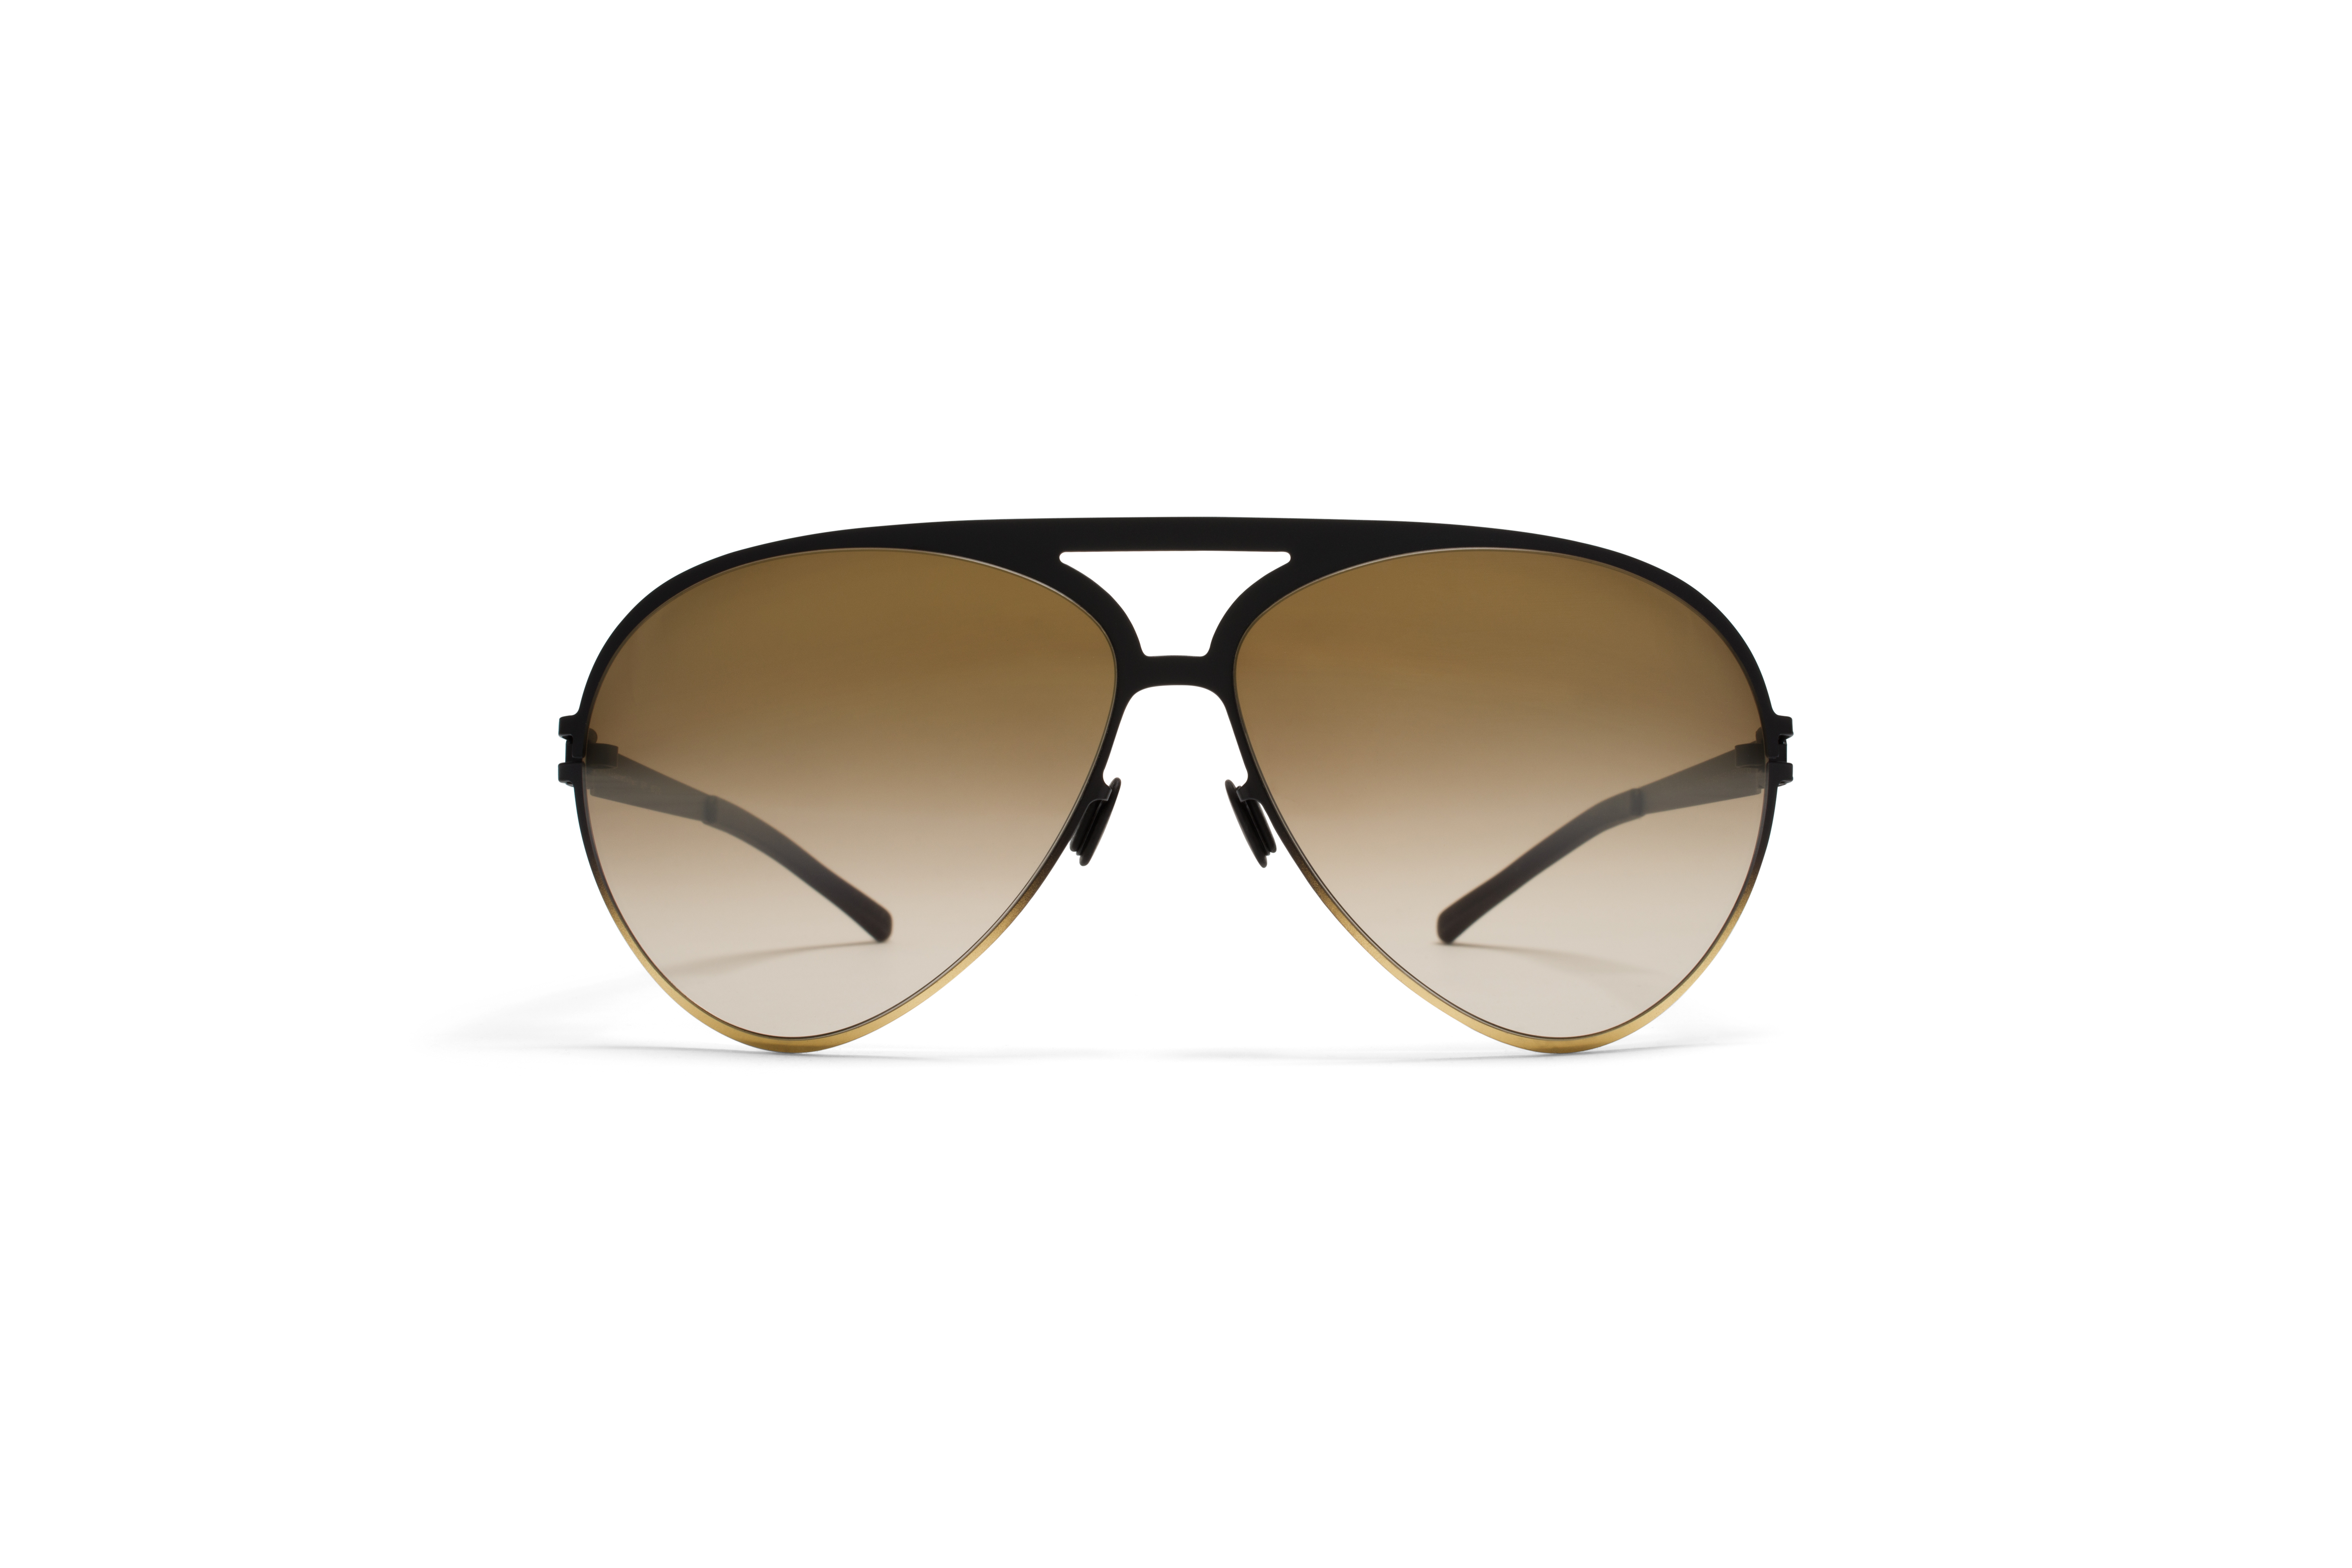 MYKITA Bw Sun Sepp F67 Black Gold Brown Gradient F56fbf6f25fbe0